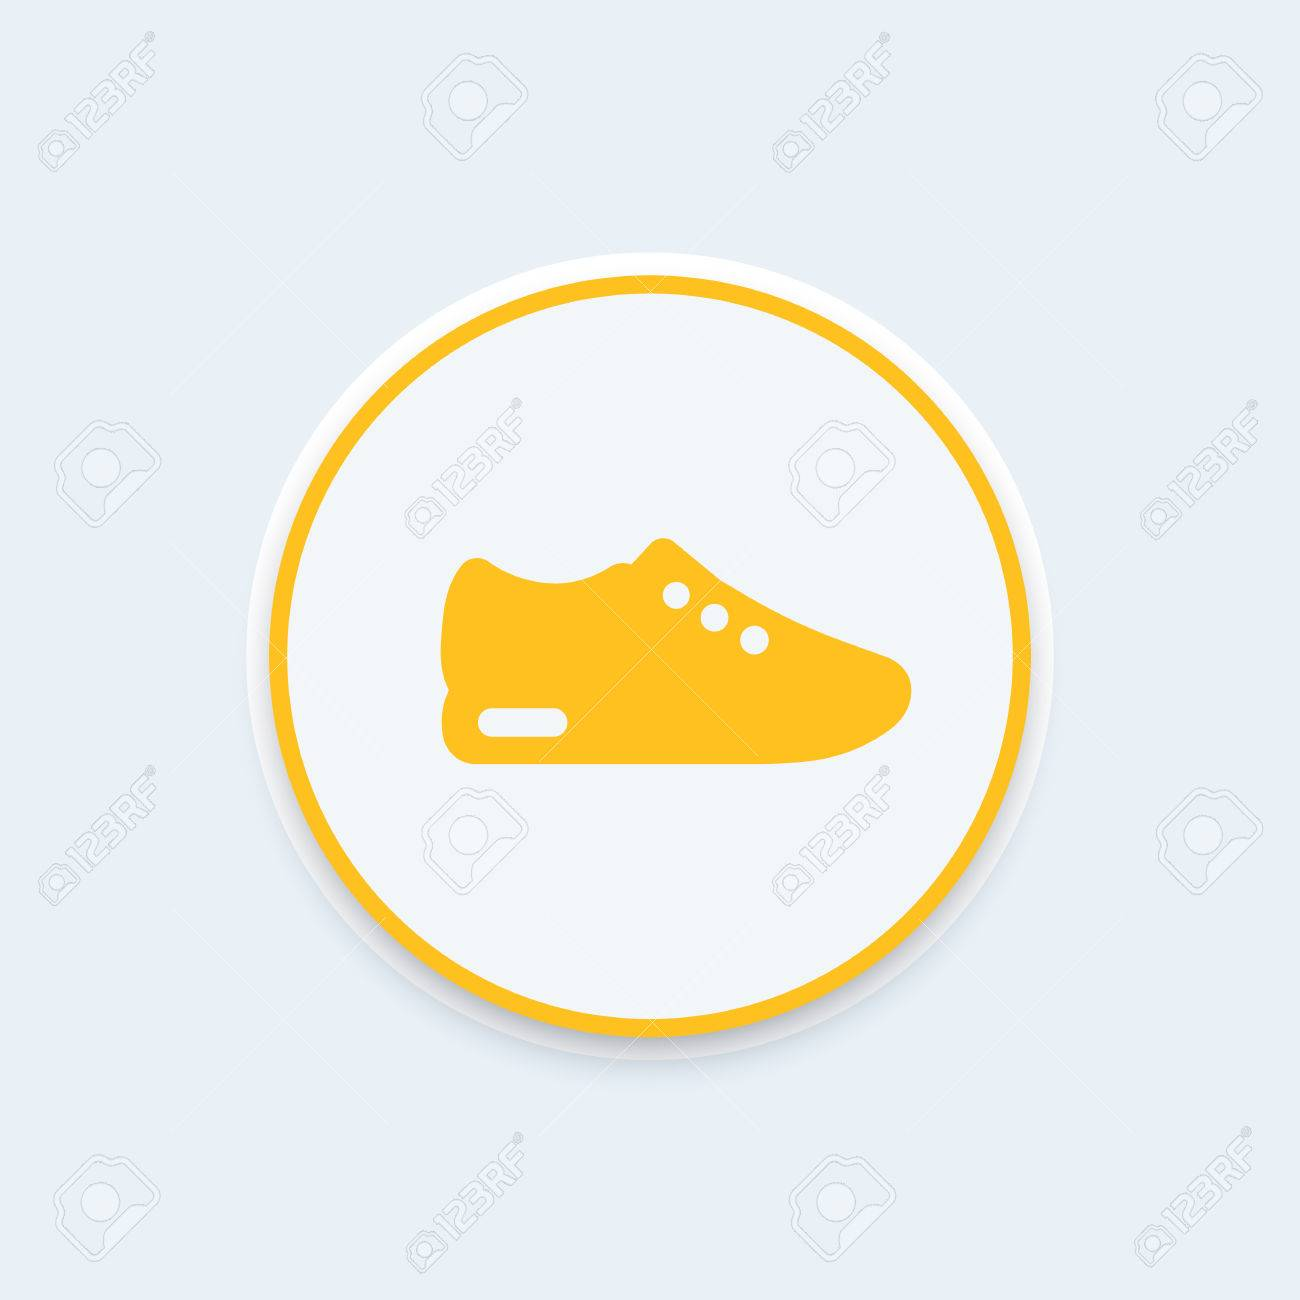 hight resolution of running shoe icon trainers sneakers round icon pictogram vector illustration stock vector